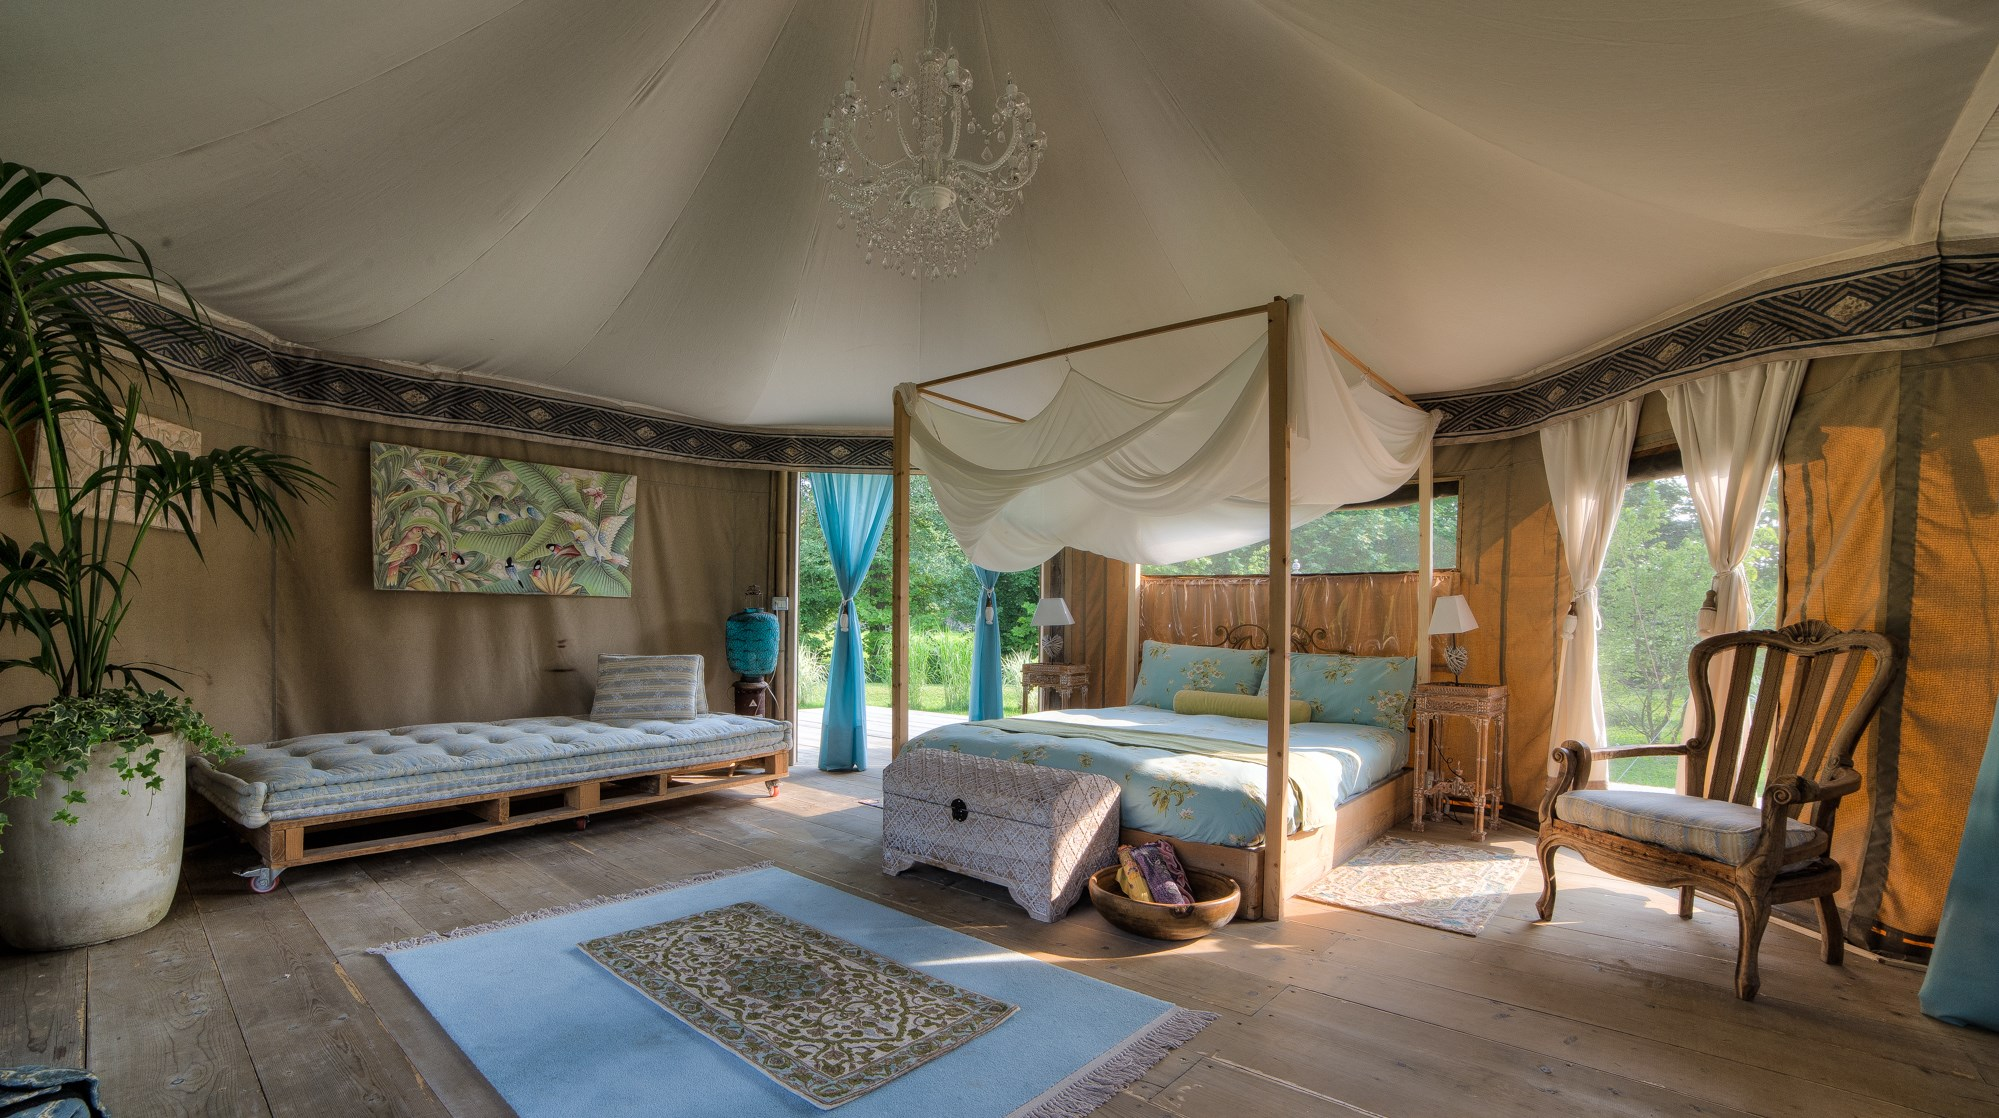 Supertrips - Glamping Canonici, Italië